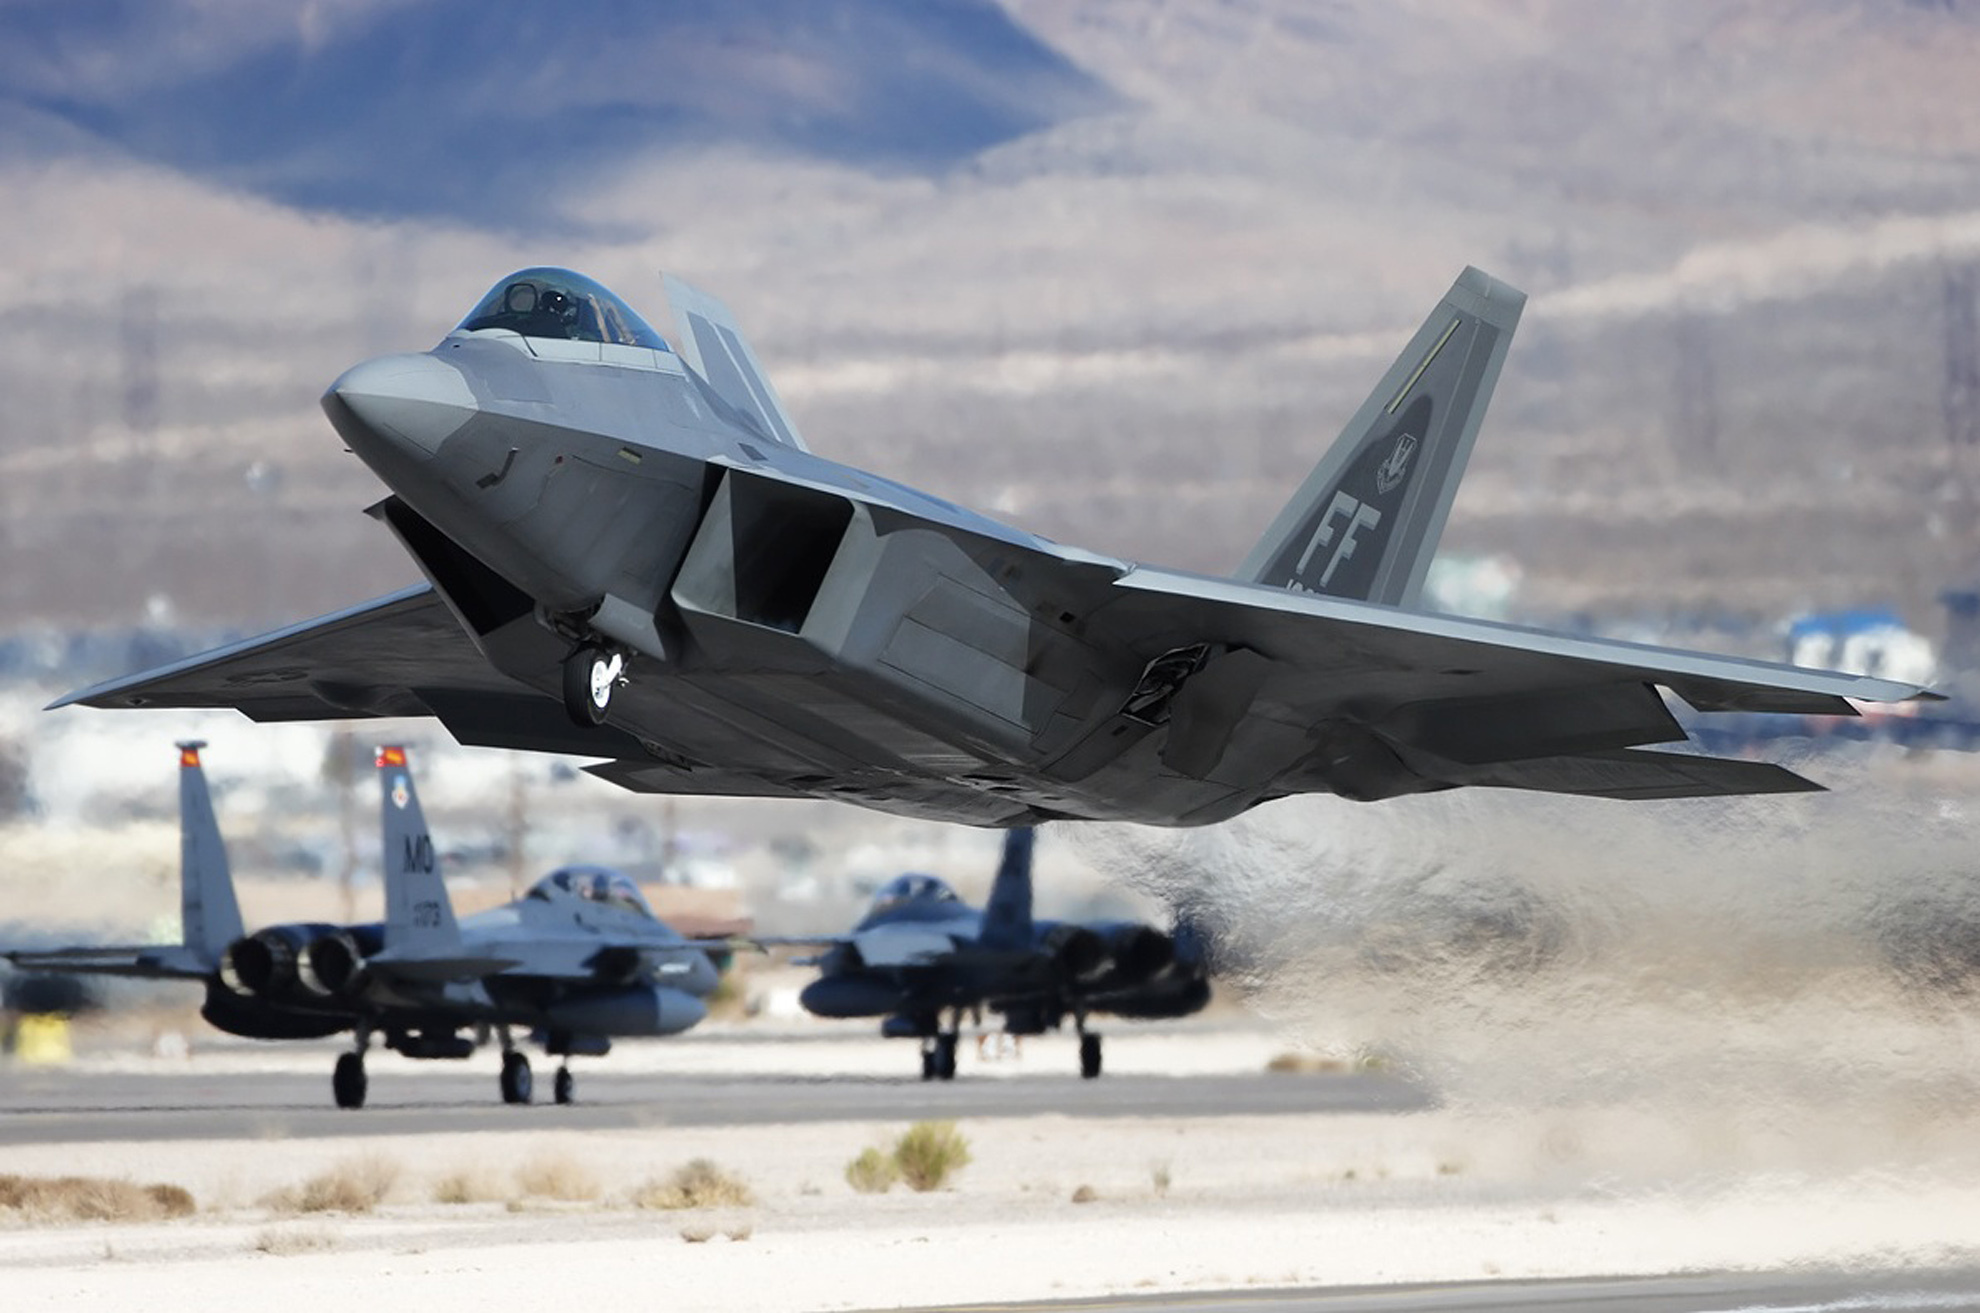 Lockheed Martin F 22 Raptor wallpaper   ForWallpapercom 1980x1313